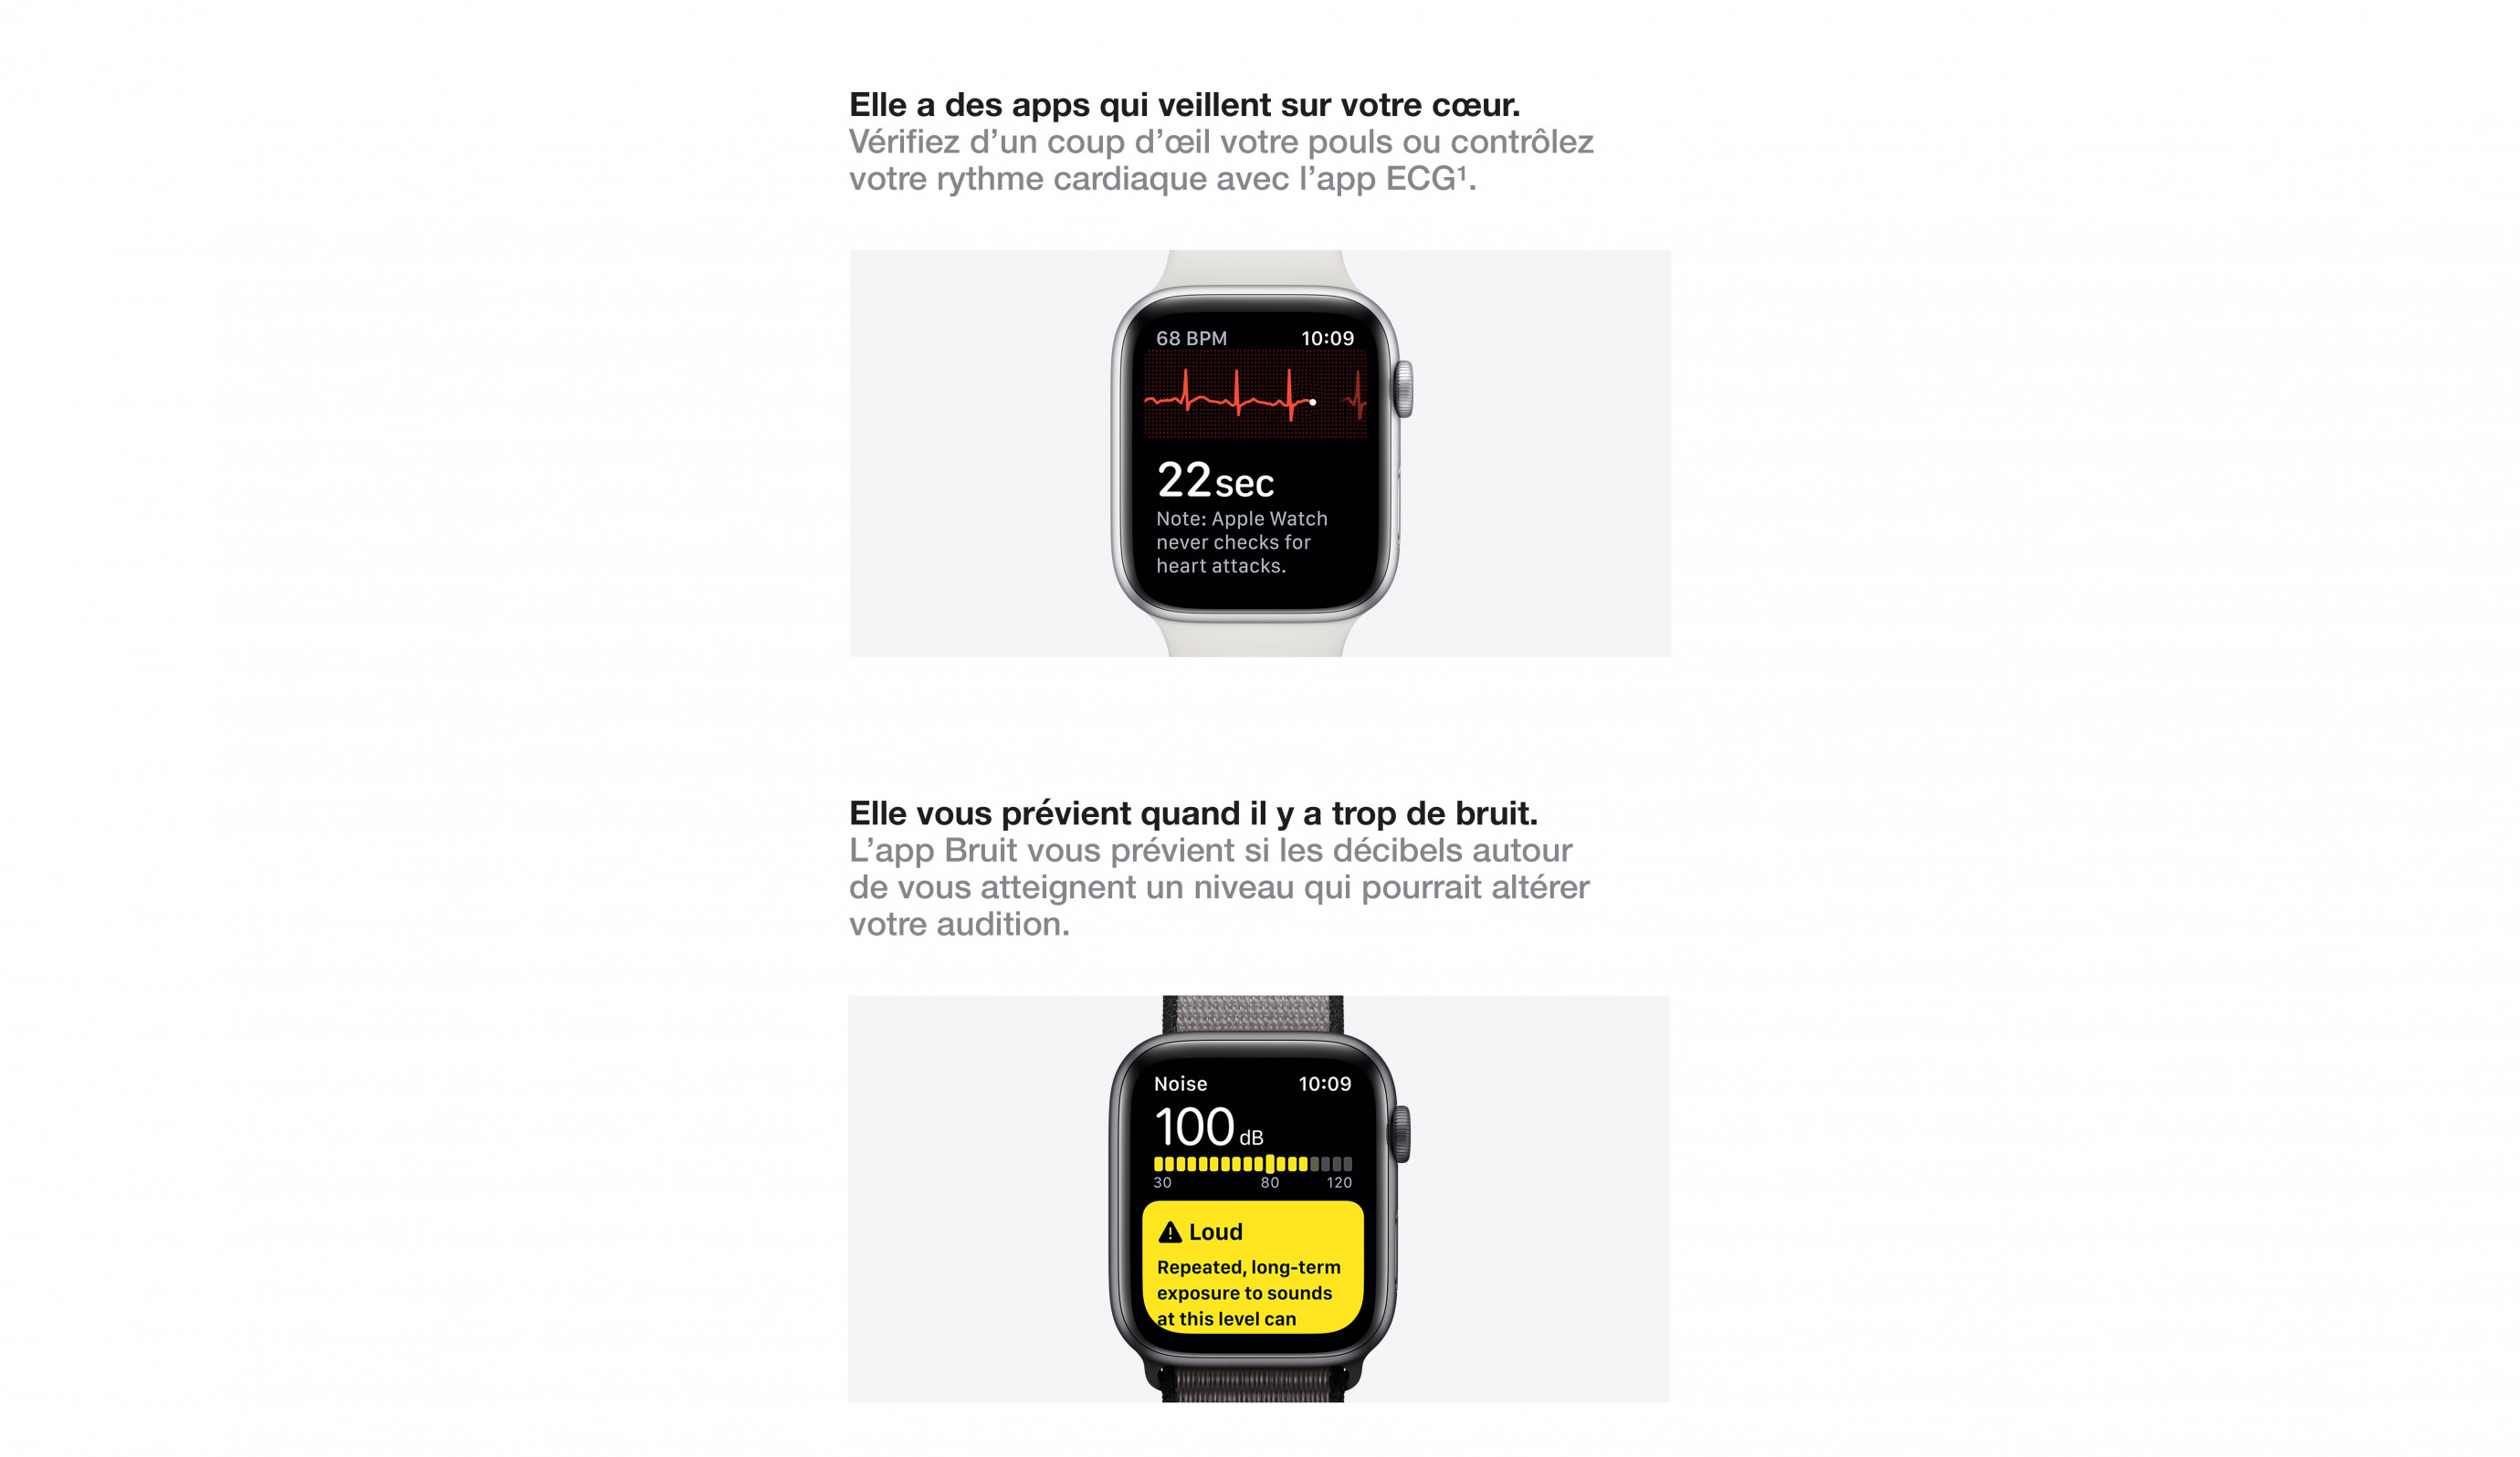 AppleWatchSeries5-productpage_fr_03.jpg